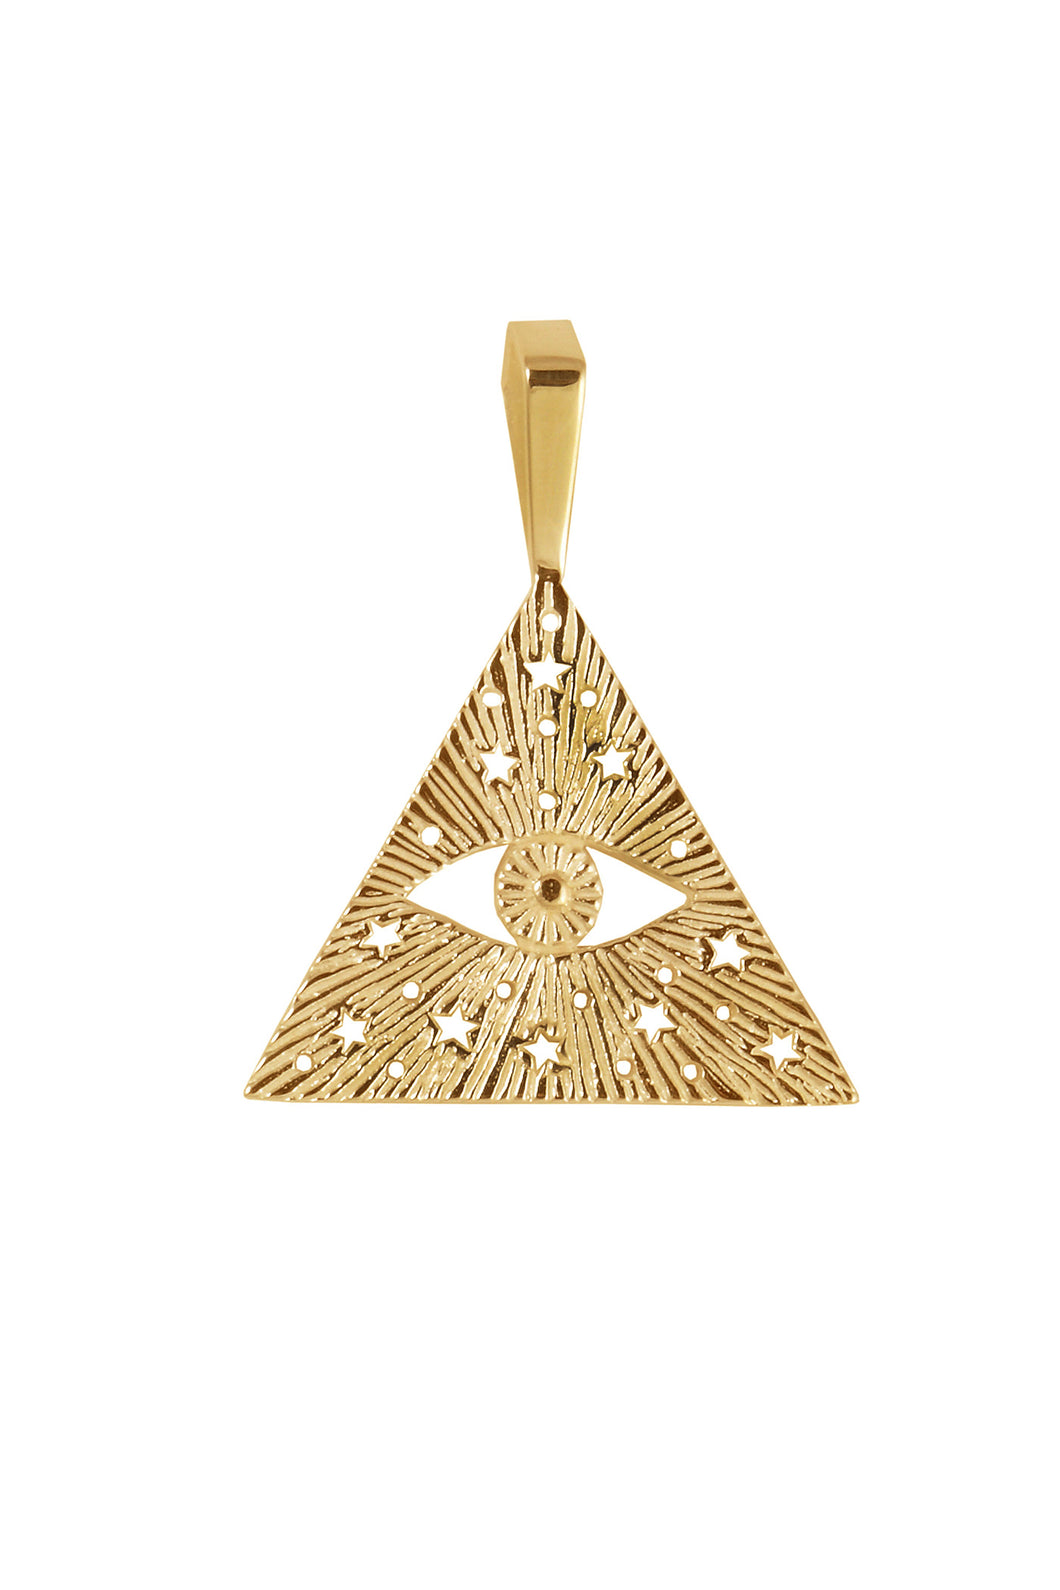 All-seen-eye pendant for men. Gold plated.